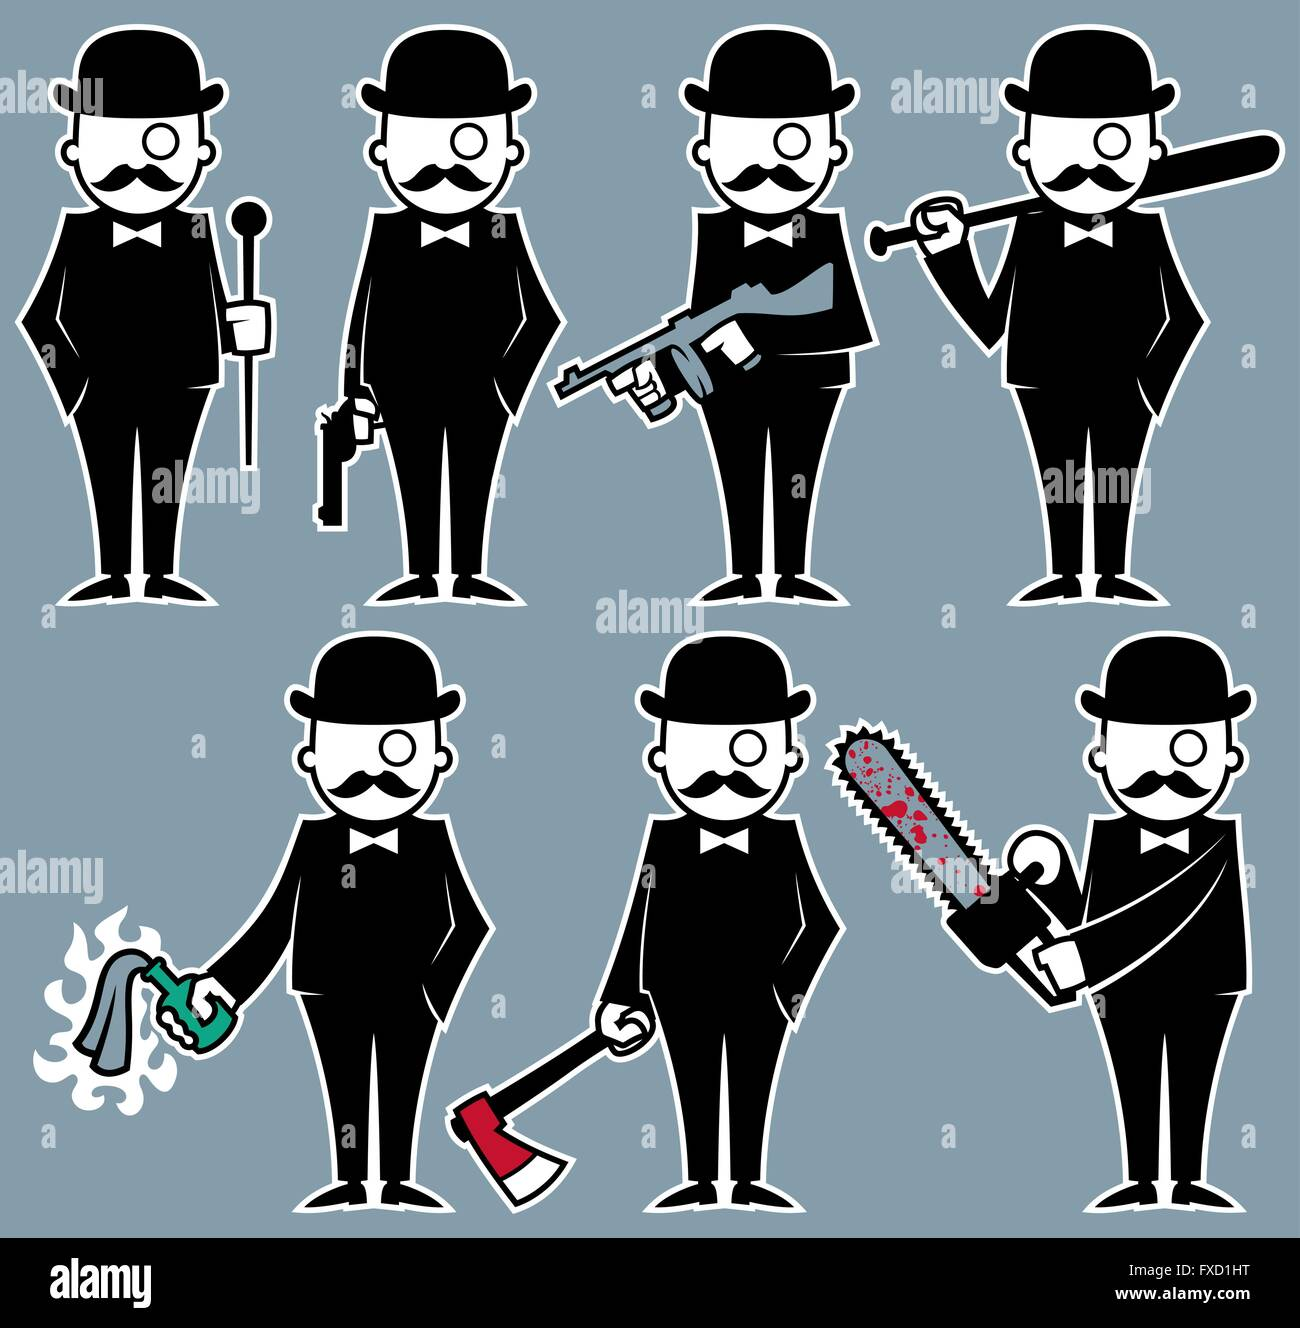 Set of 7 illustrations with violent hipster character. No transparency and gradients used. - Stock Vector